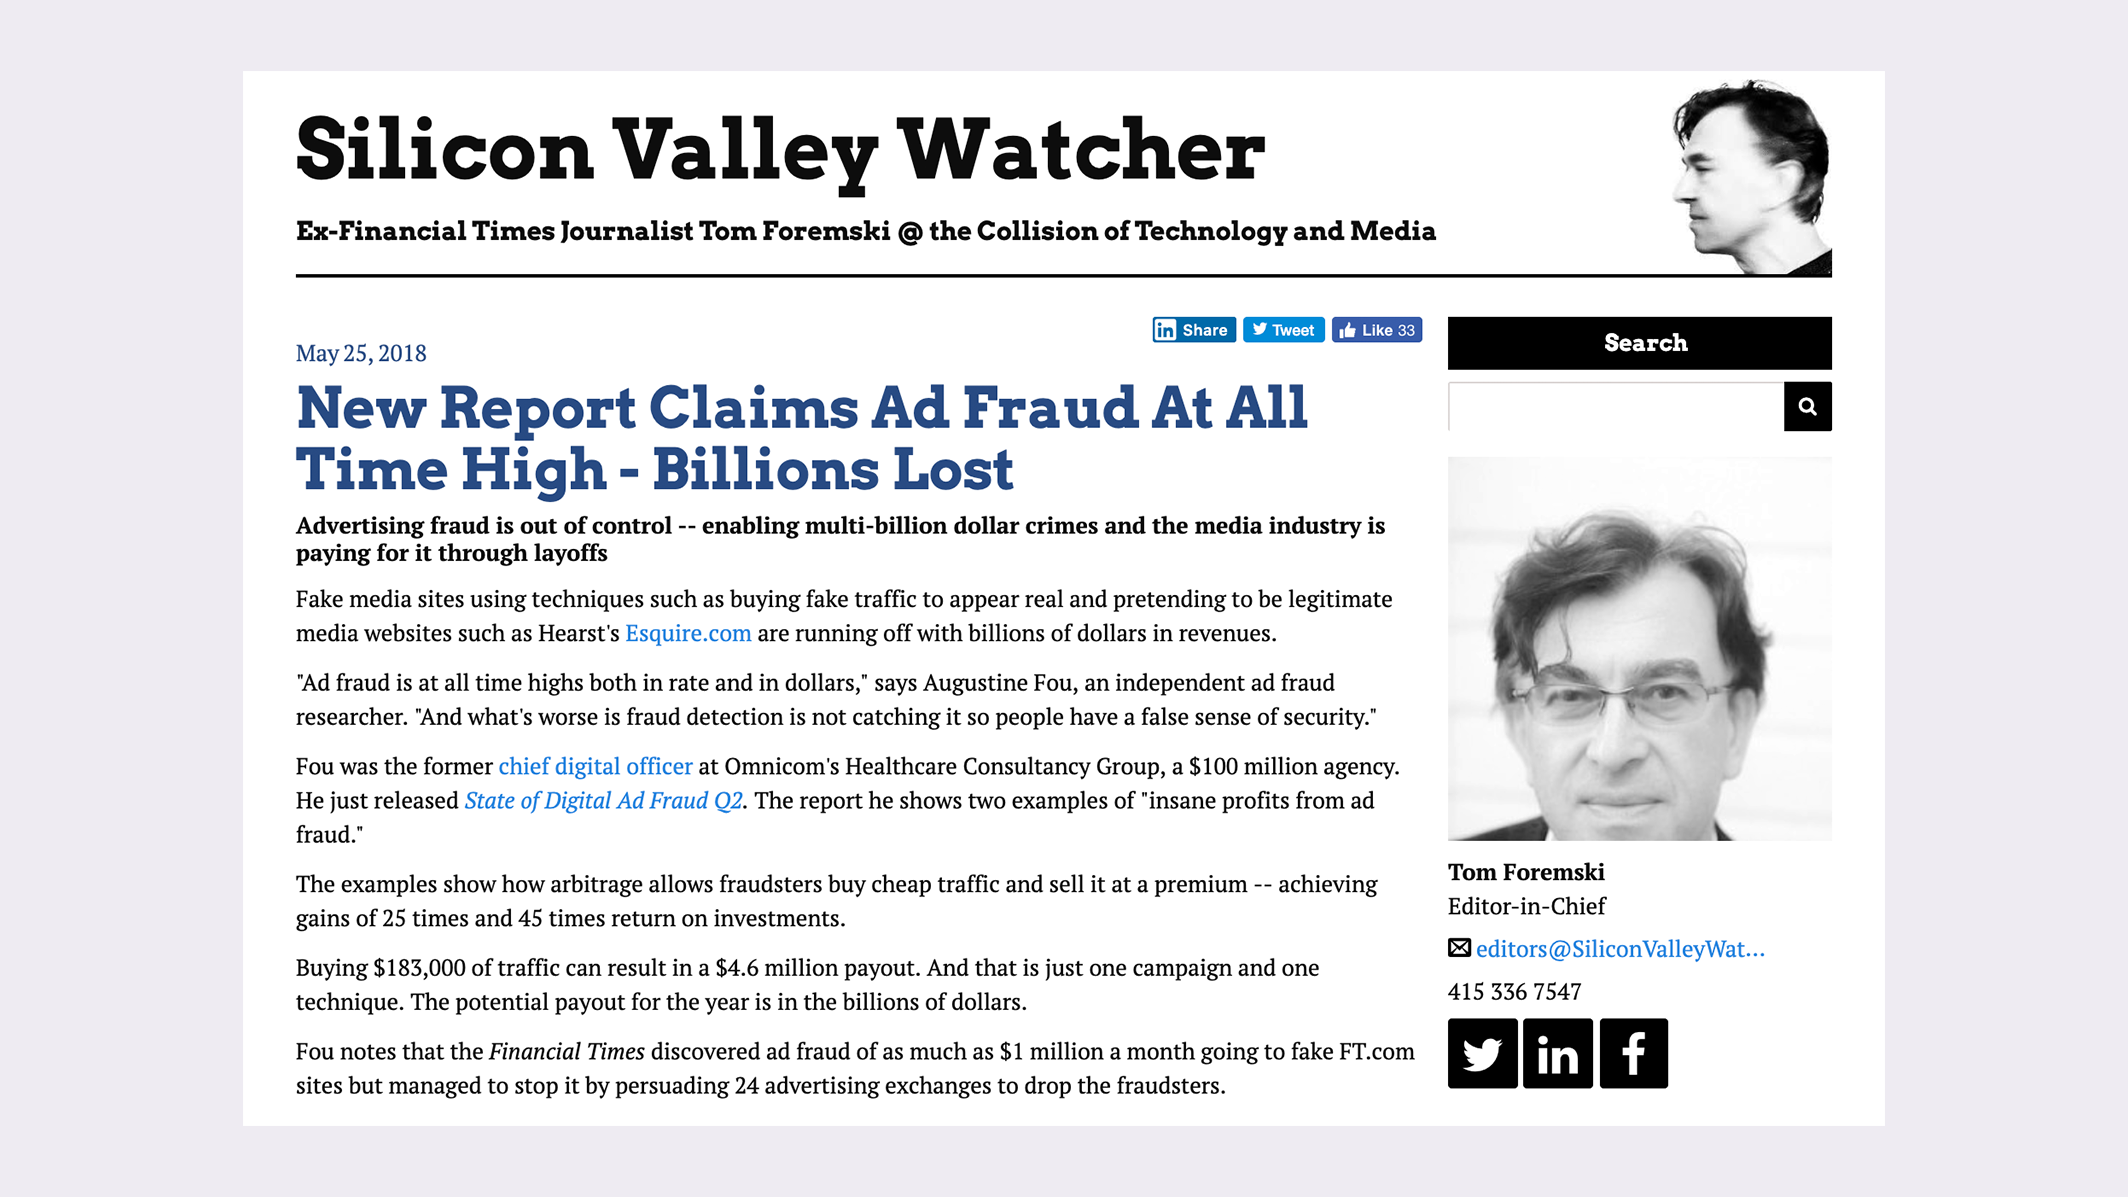 Tom's story on digital ad fraud